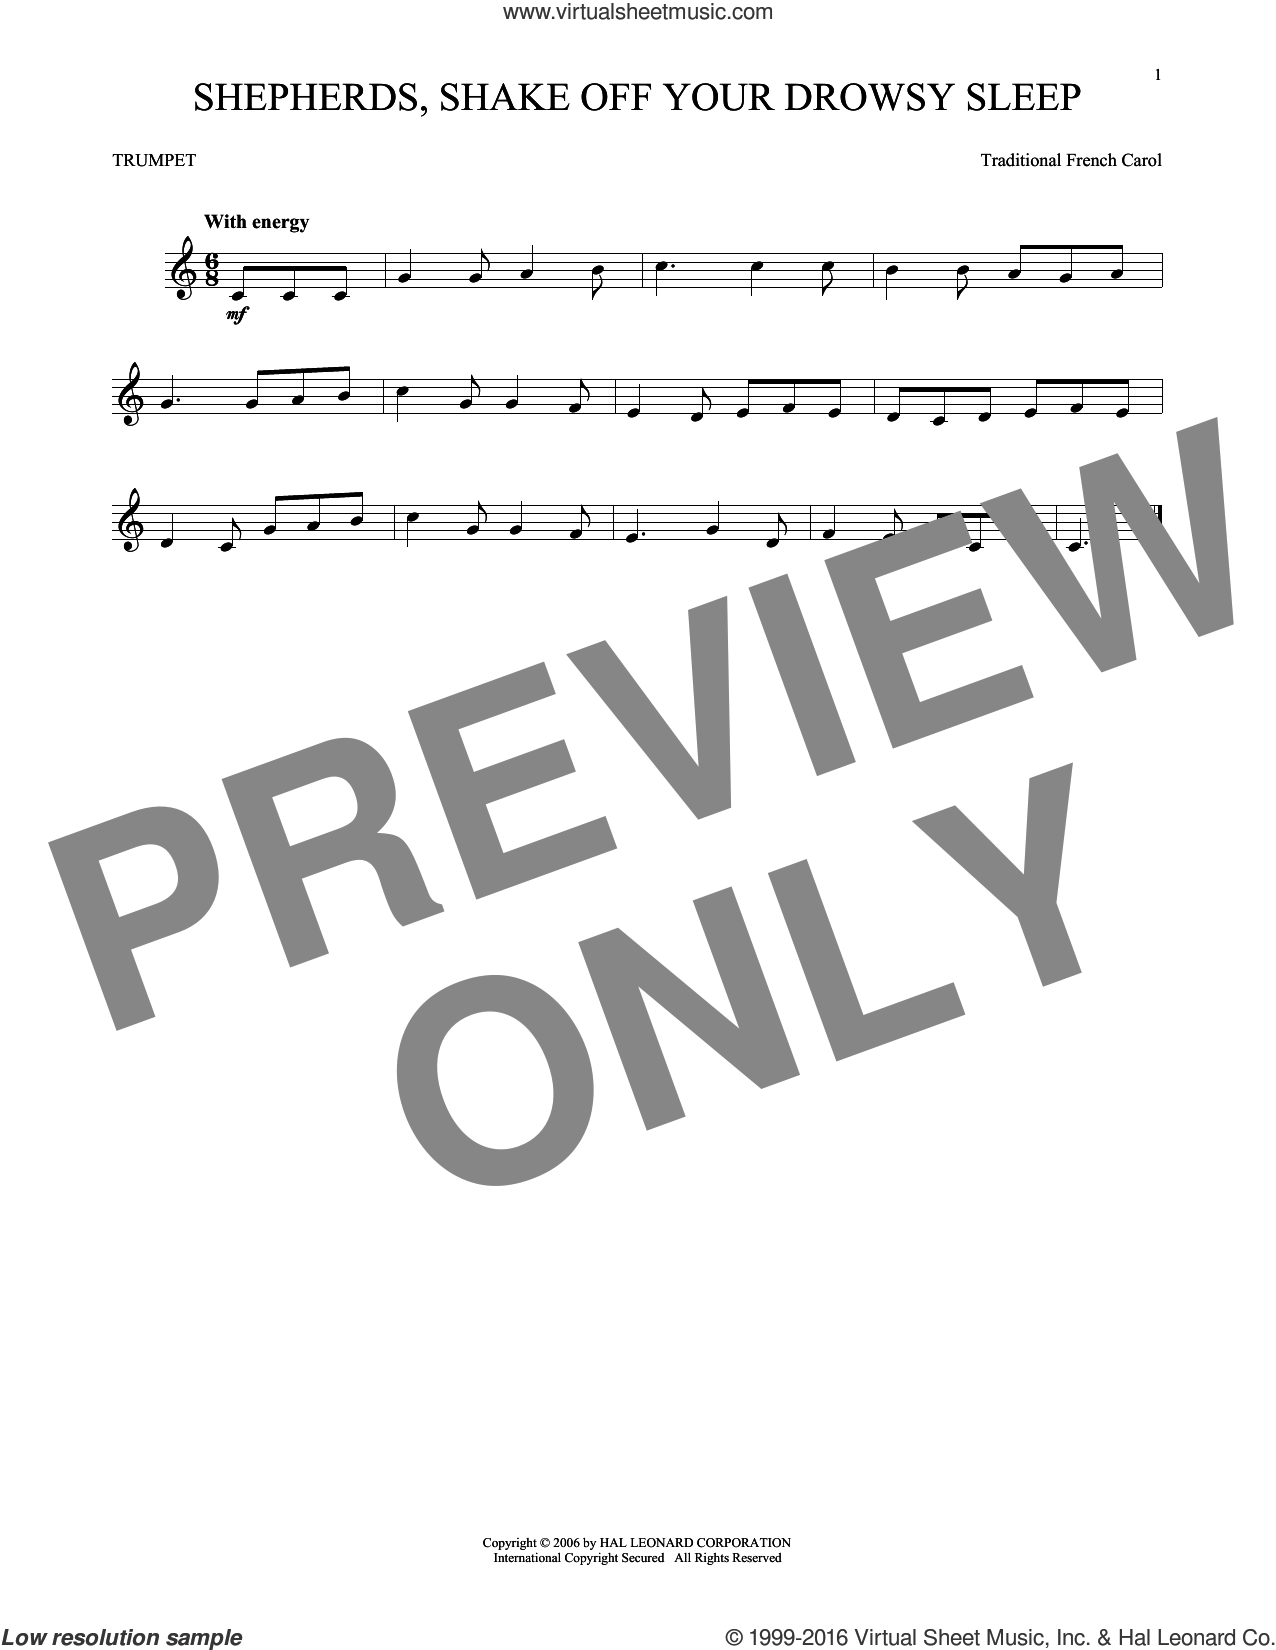 Shepherds, Shake Off Your Drowsy Sleep sheet music for trumpet solo, intermediate skill level